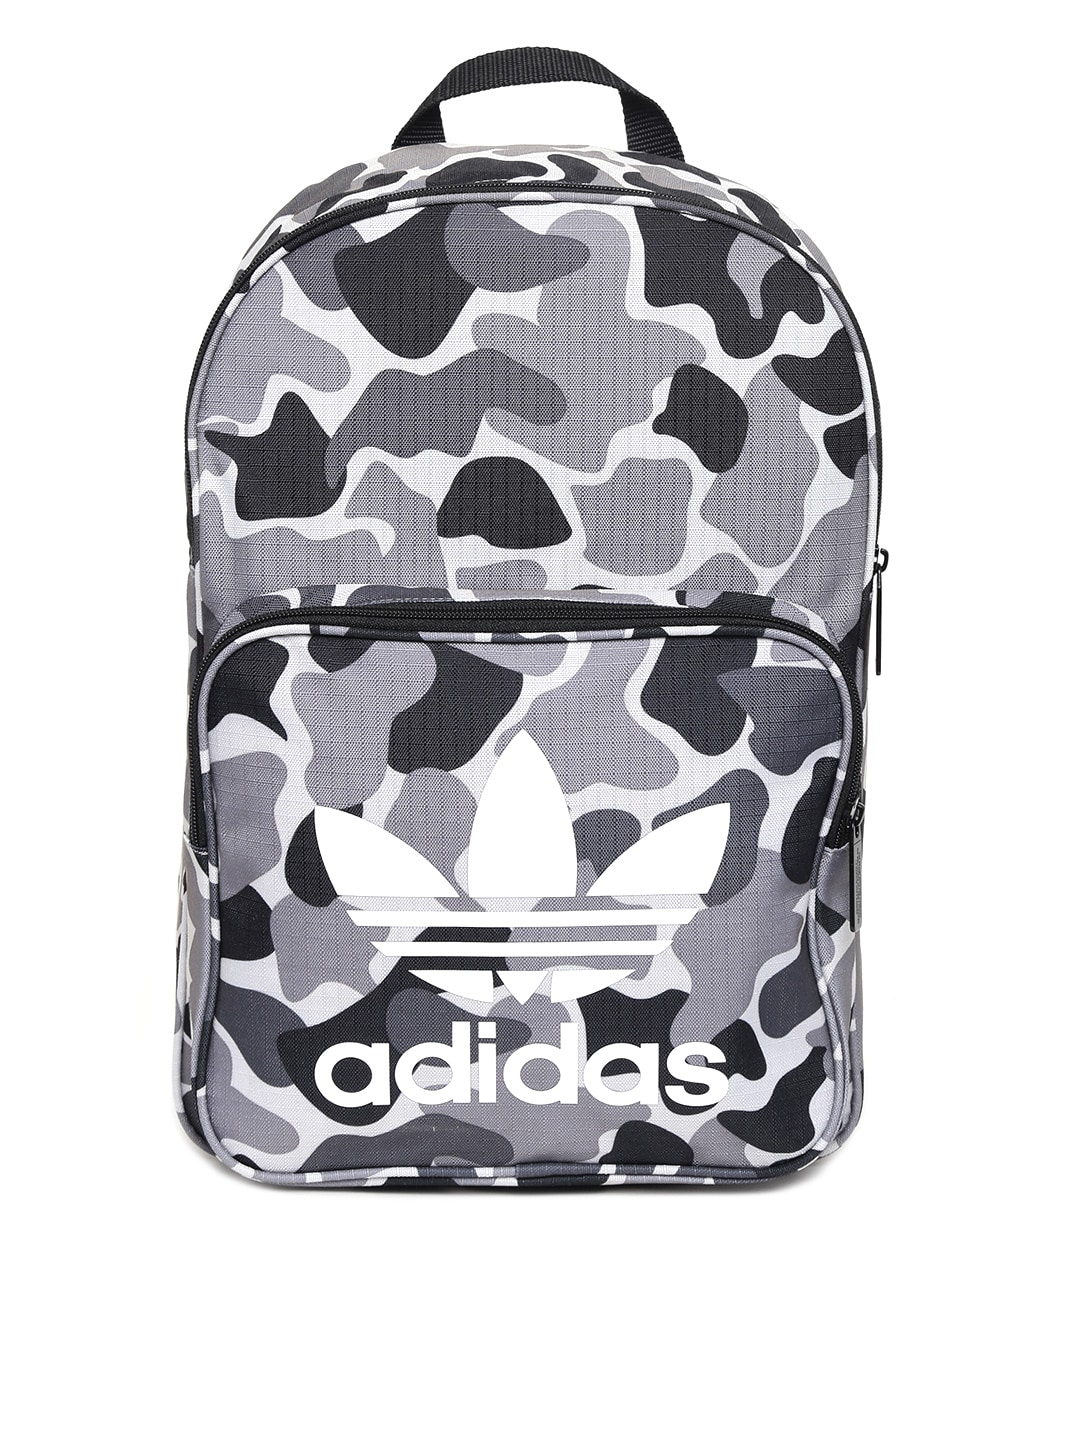 f7dea1c6156be Adidas Originals Backpacks Tights - Buy Adidas Originals Backpacks Tights  online in India